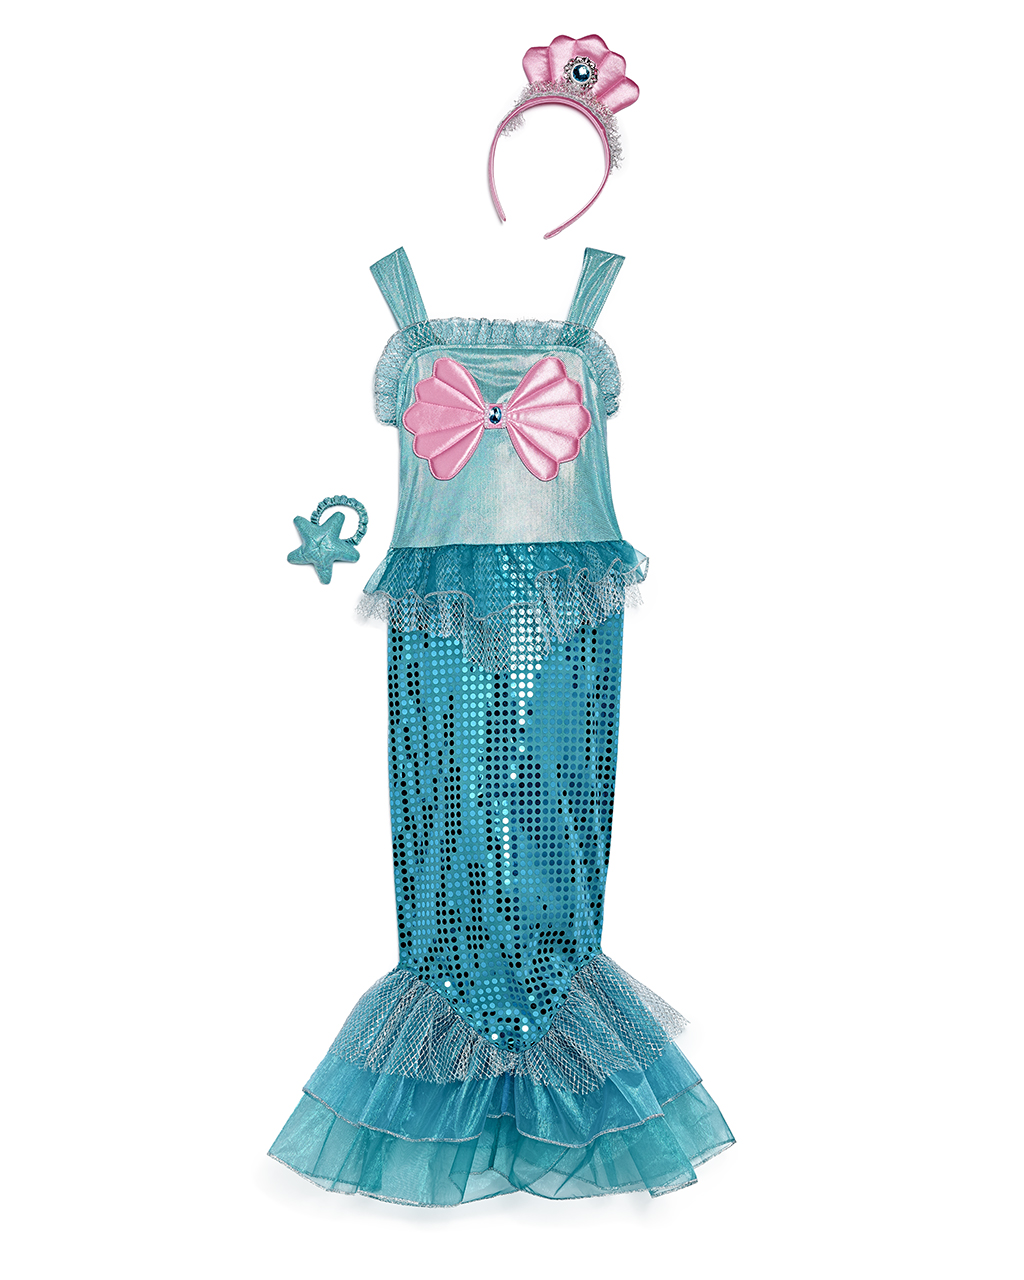 Get Unique Halloween Costumes For Kids at T J Maxx - The